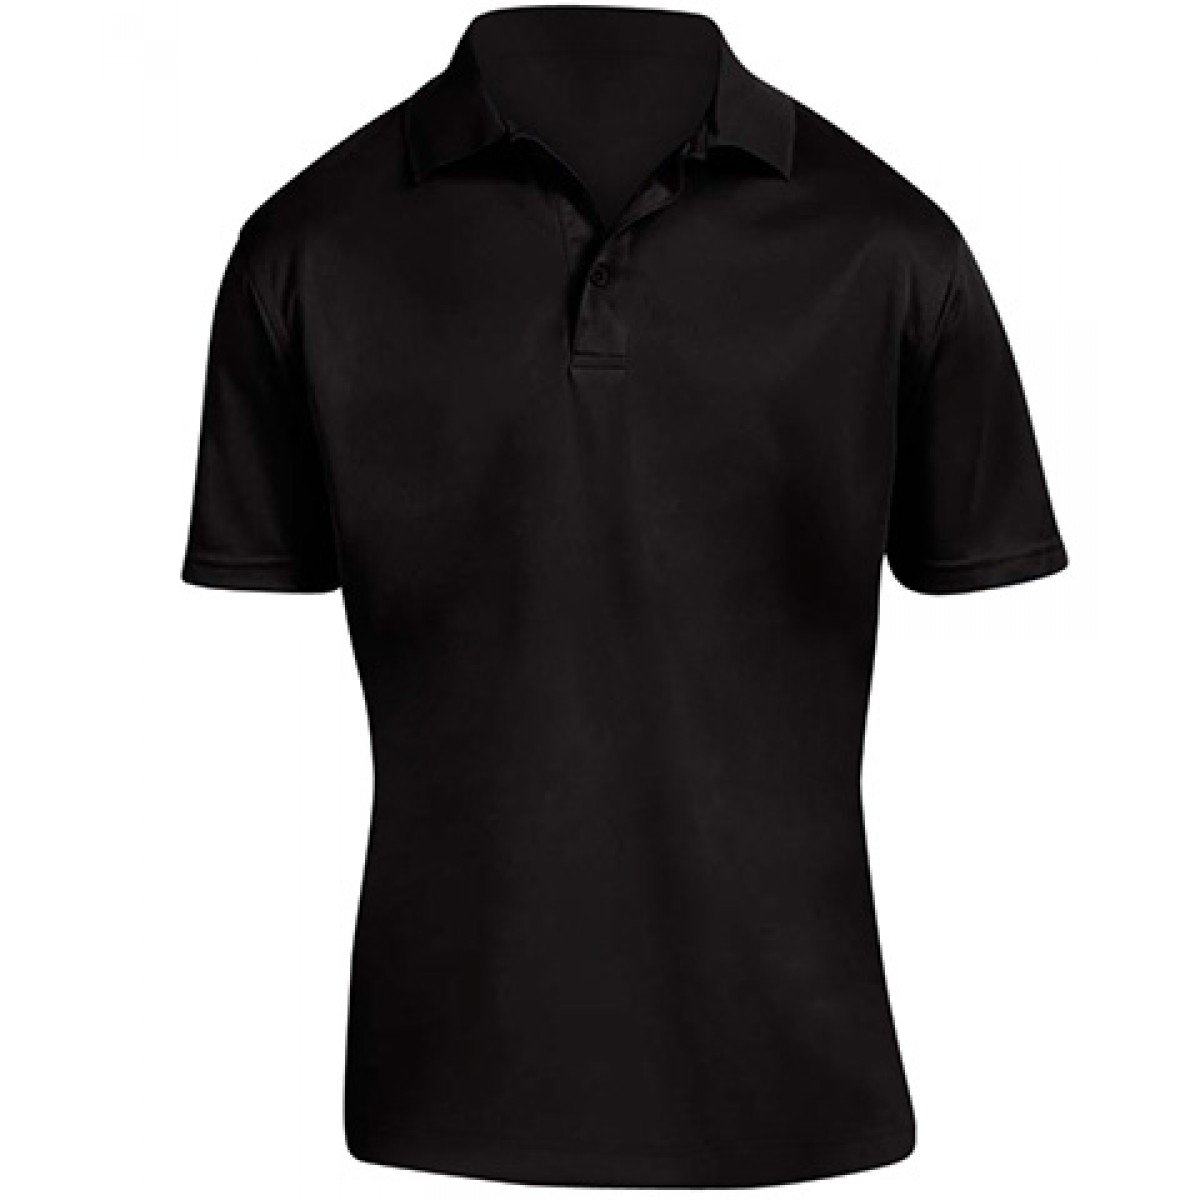 Men's 4 oz. Polytech Polo-Black-5XL